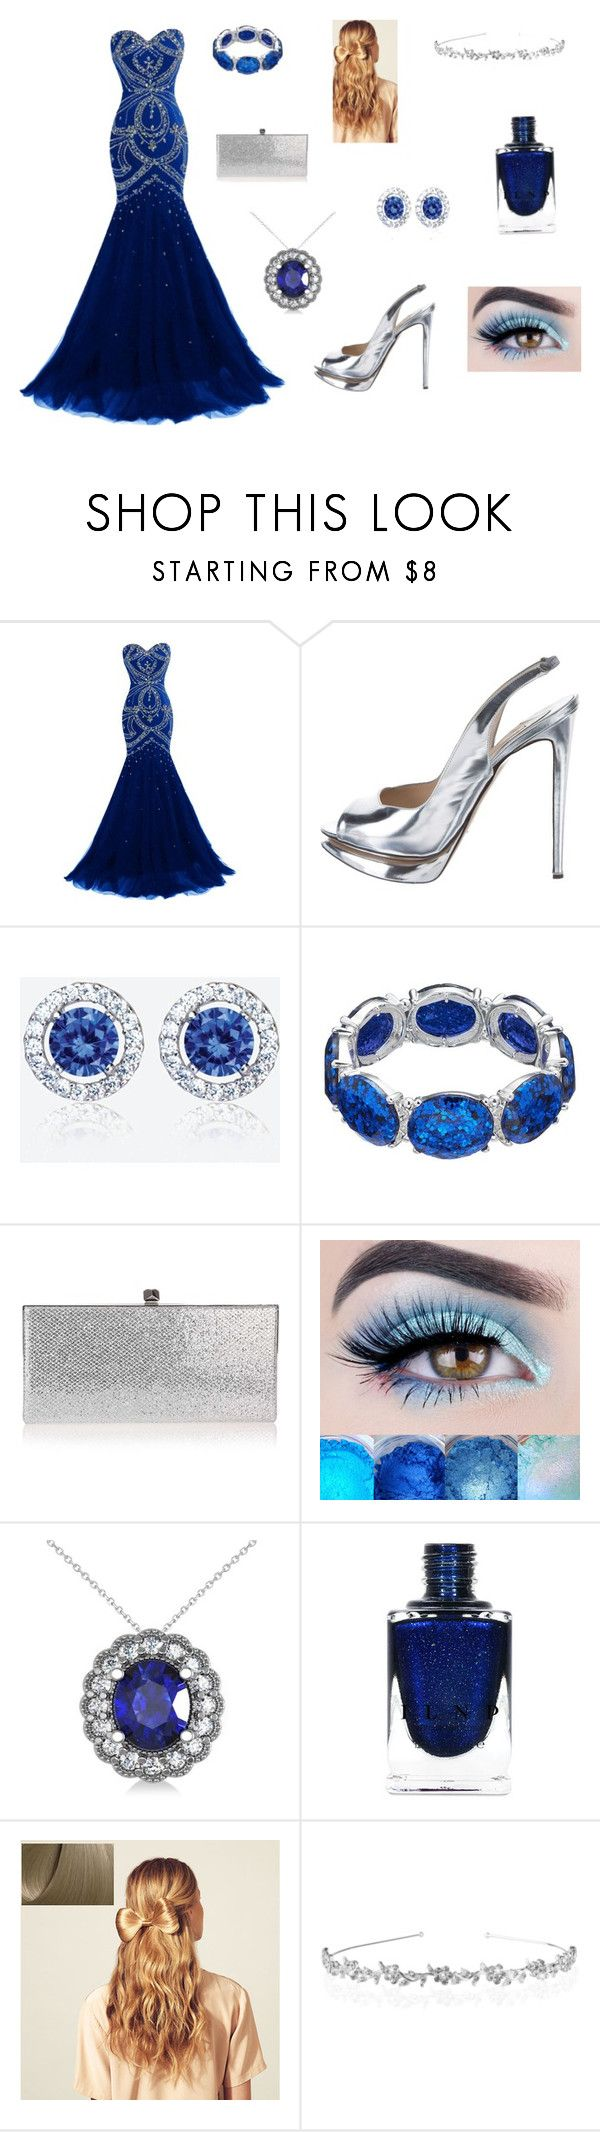 """""""Ravenclaw Yule Ball"""" by isabelle-ruby1 ❤ liked on Polyvore featuring Nicholas Kirkwood, Jimmy Choo, Allurez and Hershesons"""